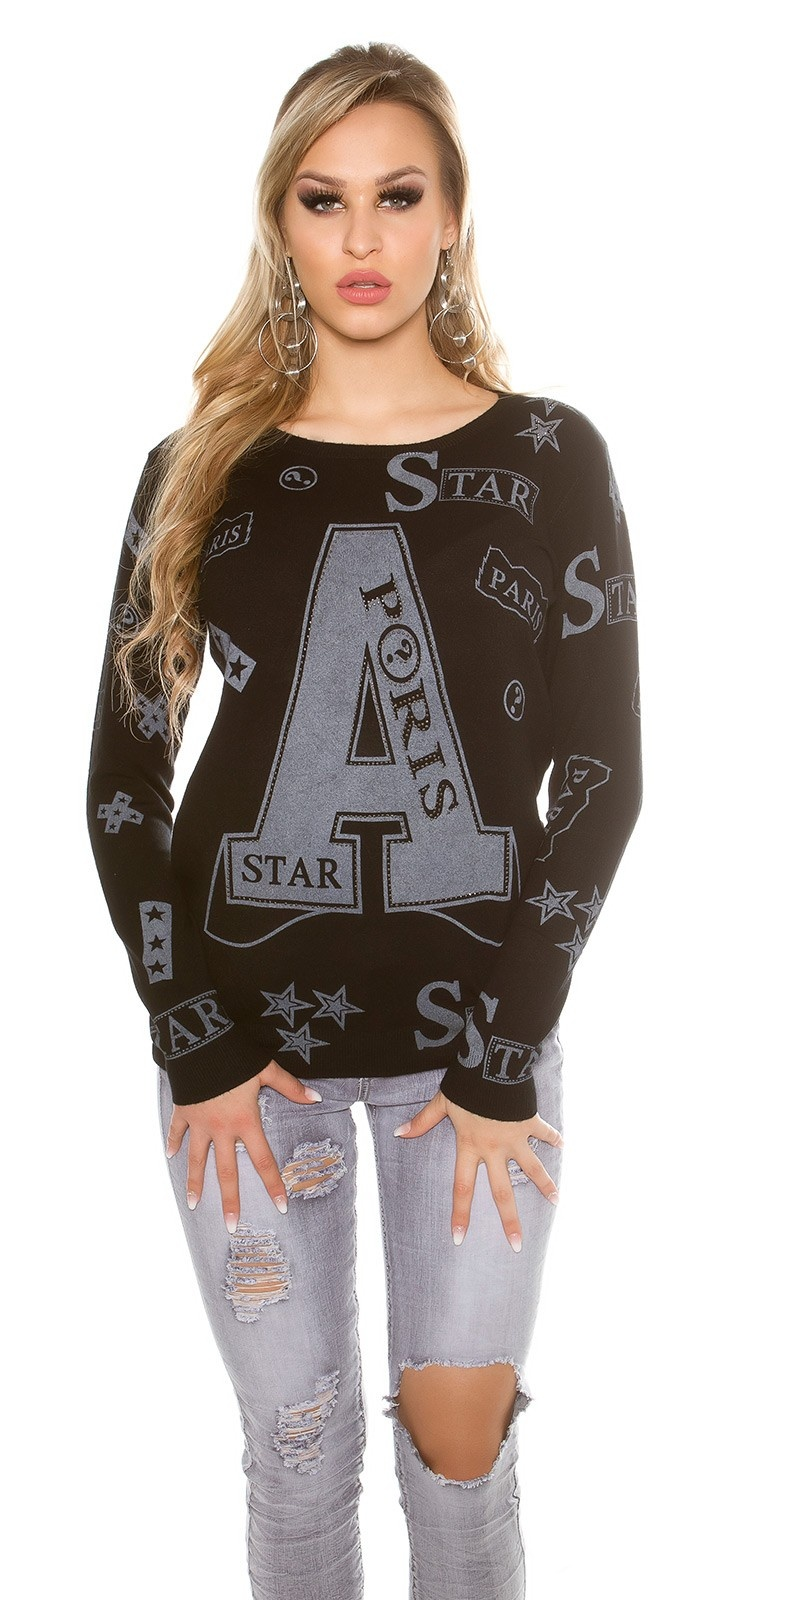 Trendy sweater with print and rivets Black